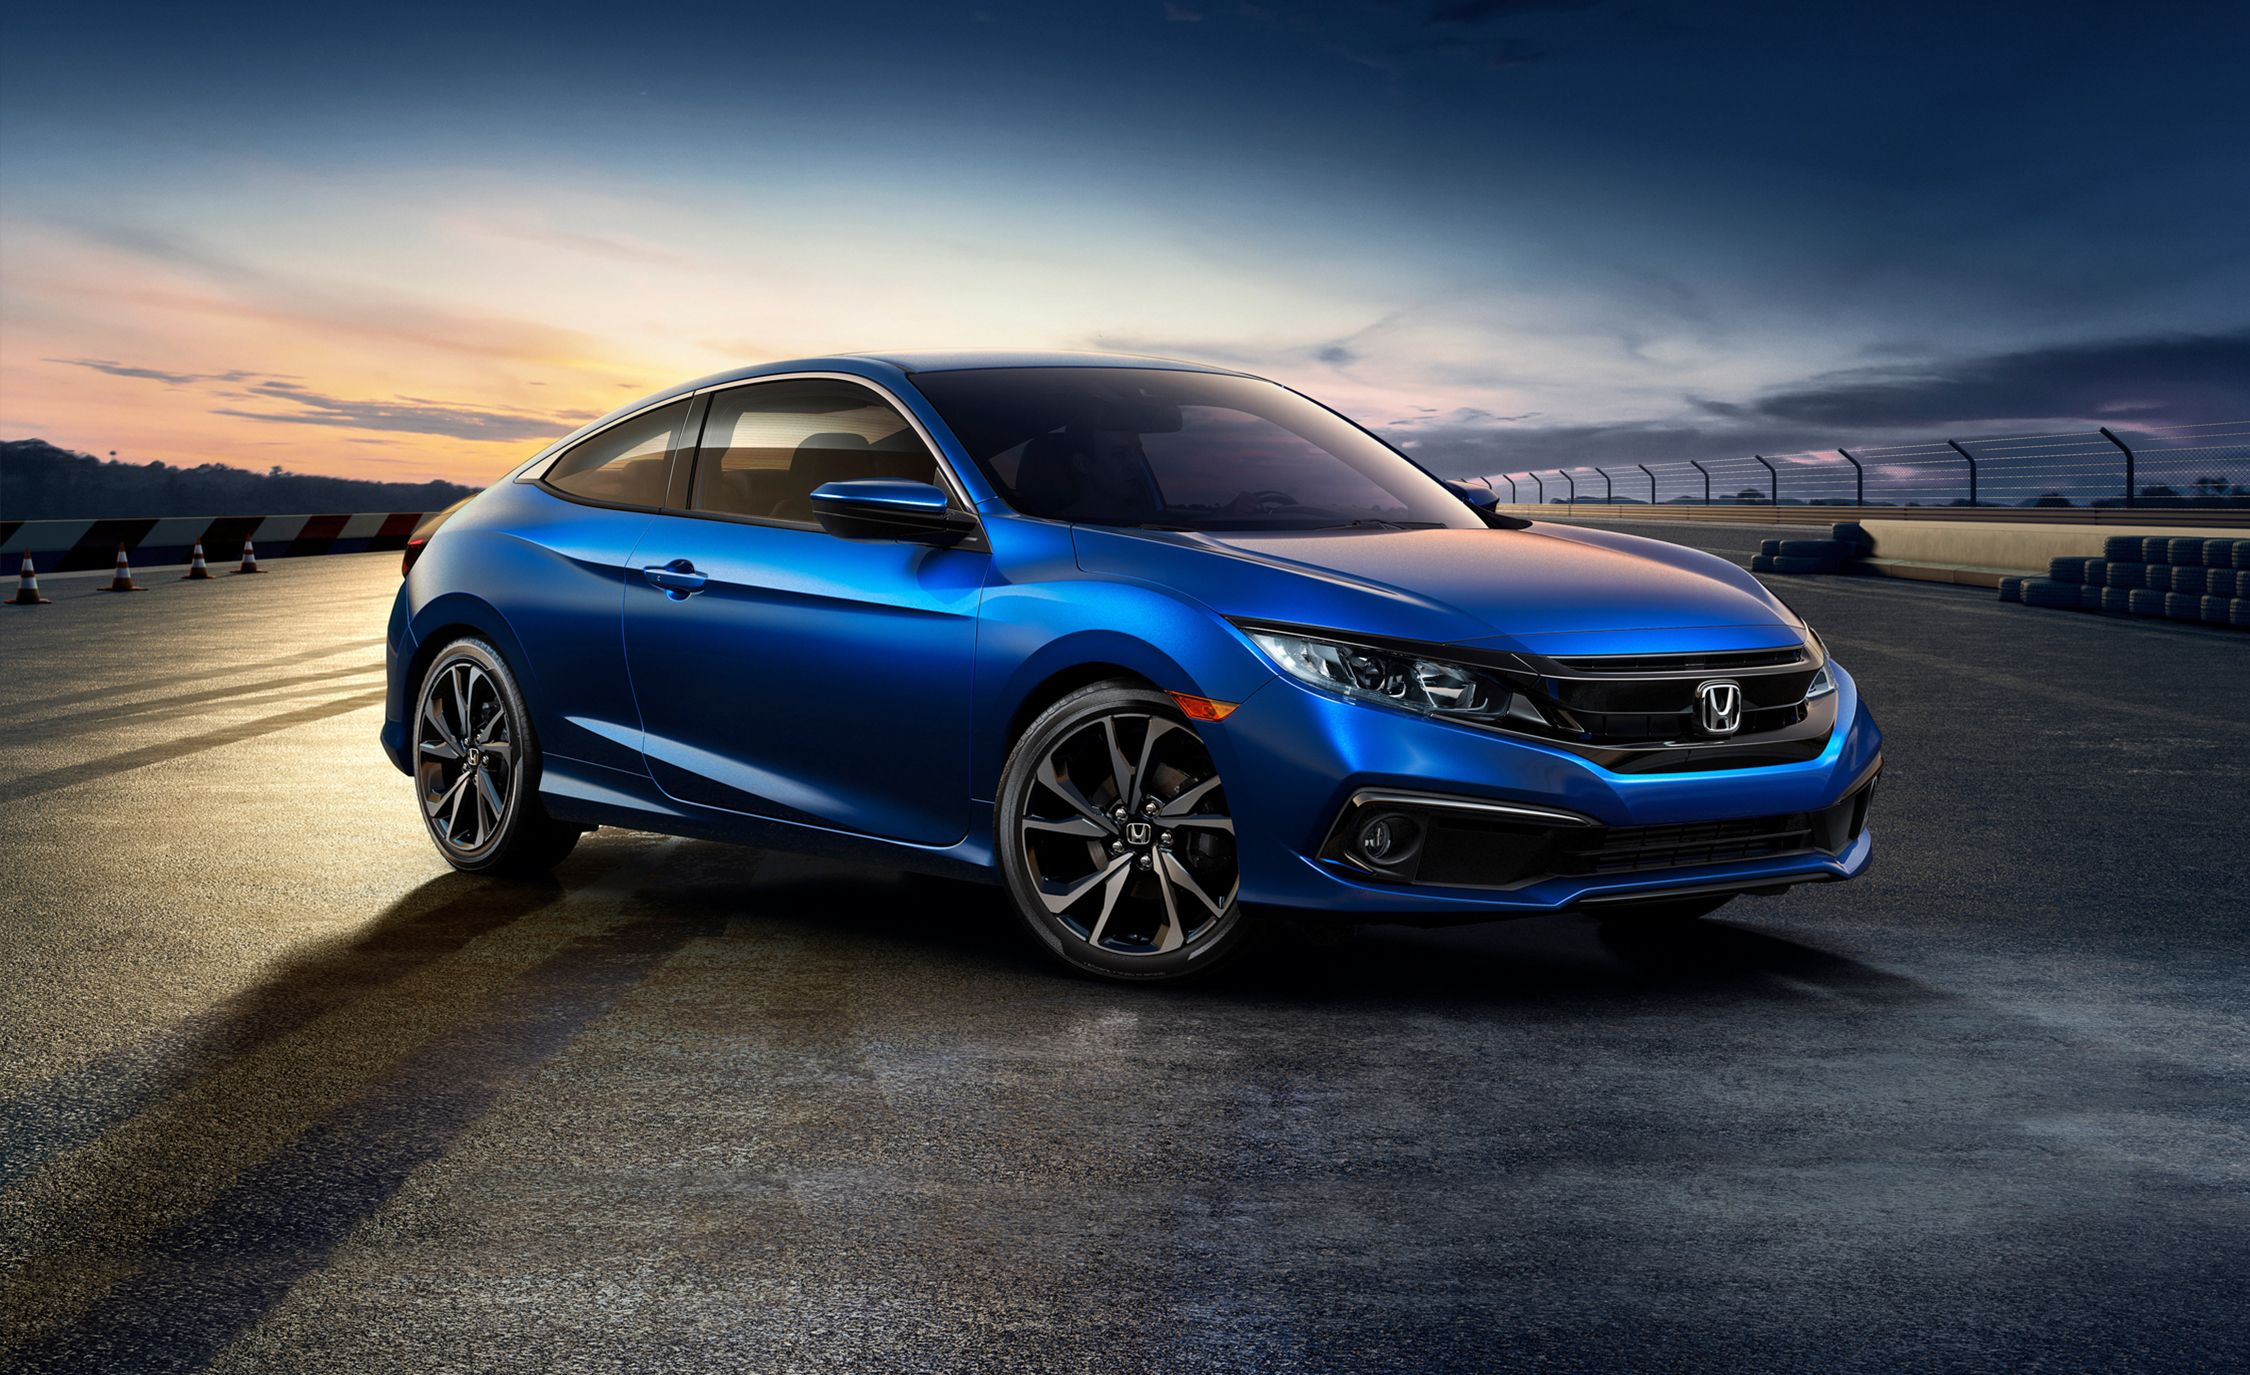 The 2019 Honda Civic Gets Revised Styling And A Volume Knob